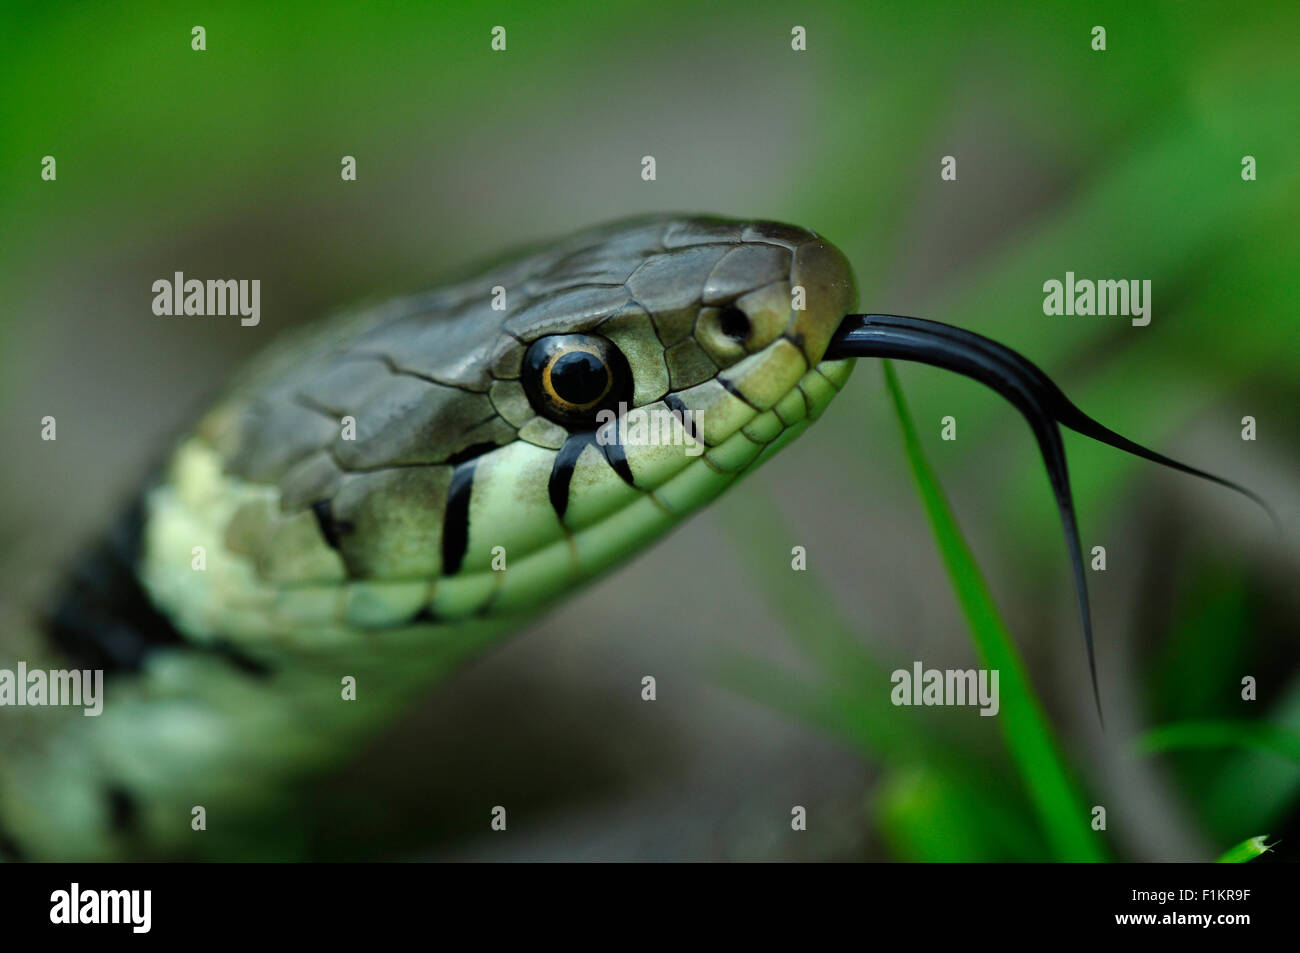 Grass snake head with its forked tongue out UK - Stock Image